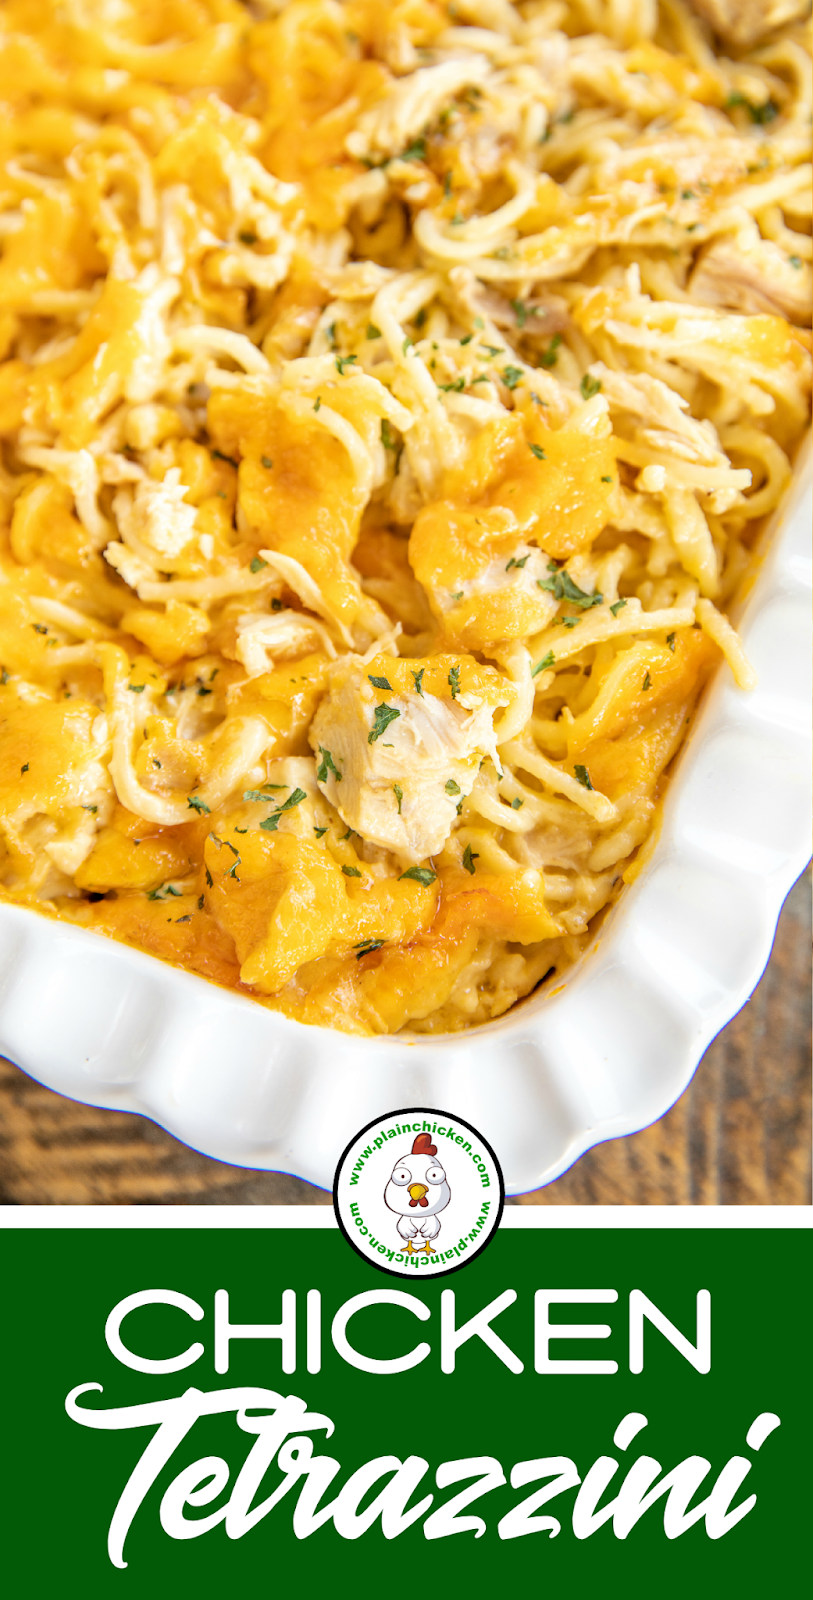 Cheesy Chicken Tetrazzini - comfort food at its best! Chicken and spaghetti baked in a homemade cheese sauce. So easy to make and the whole family loved it! Chicken, spaghetti, butter, flour, milk, cheddar cheese, cream of chicken soup, garlic powder, Worcestershire sauce, salt, and pepper. Can add bell pepper, pimentos, green peas, or spinach to the casserole. Can make in advance and freeze for later. #casserole #chicken #spaghetti #cheddarcheese